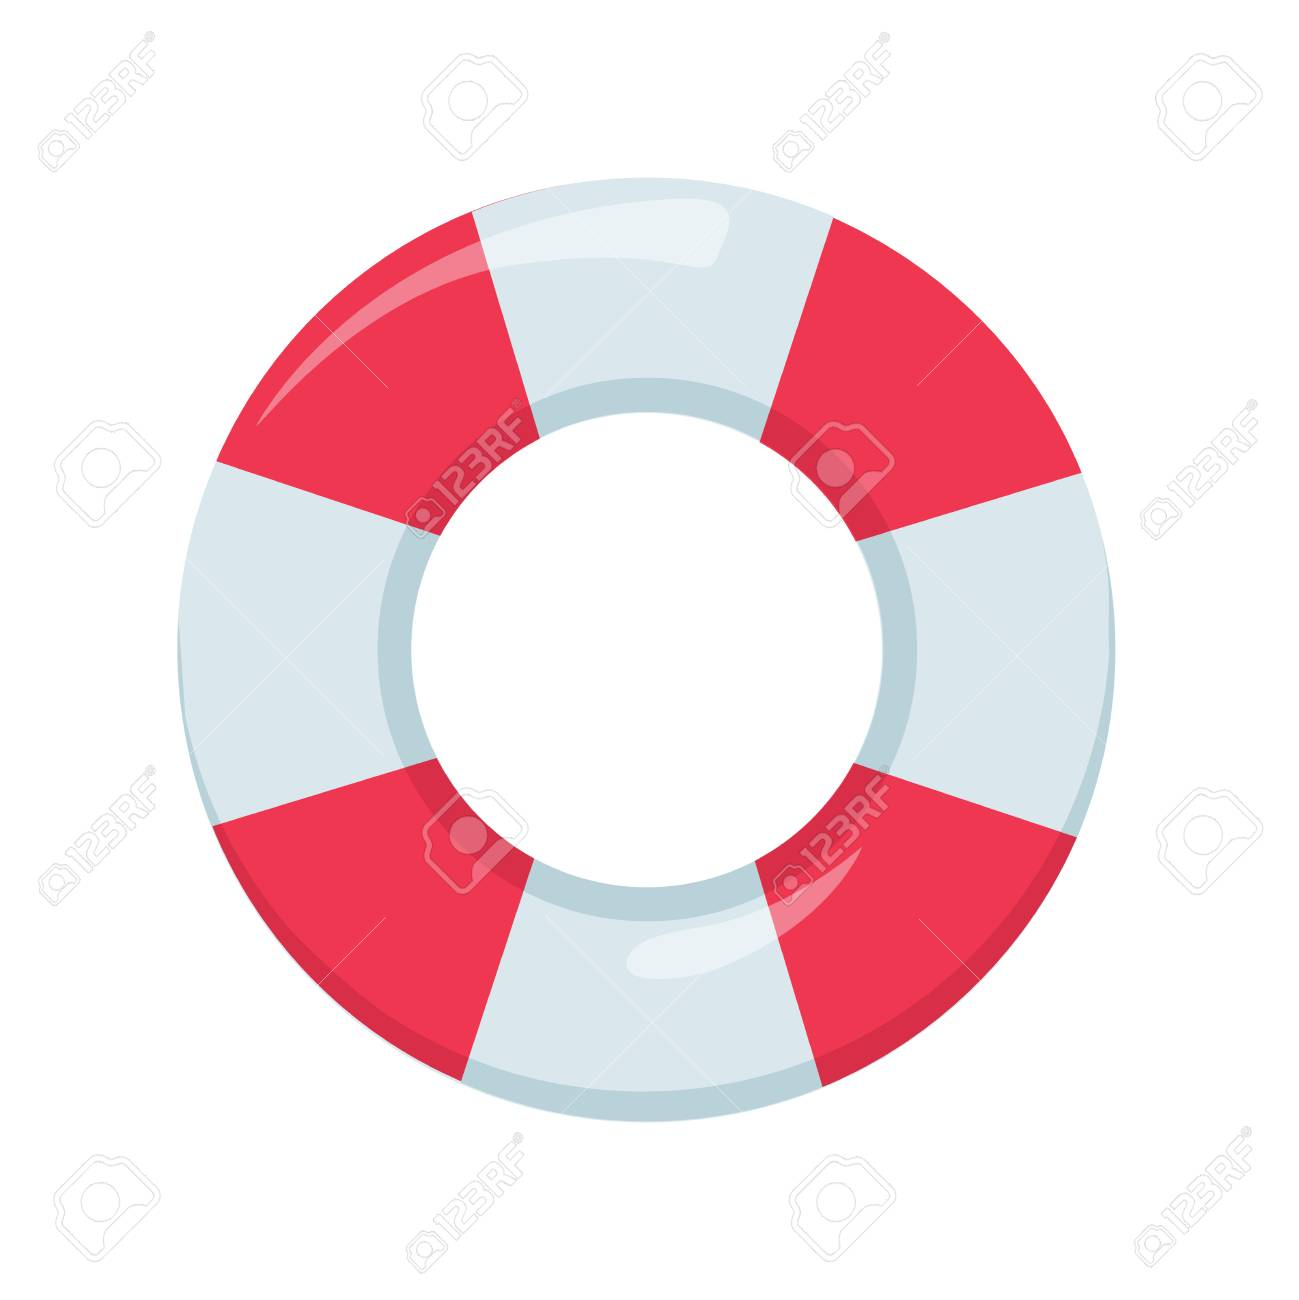 Red and White Ring Float. Beach buoy colorful symbol. Lifeguard device elemnt for emergency situation. - 126506096